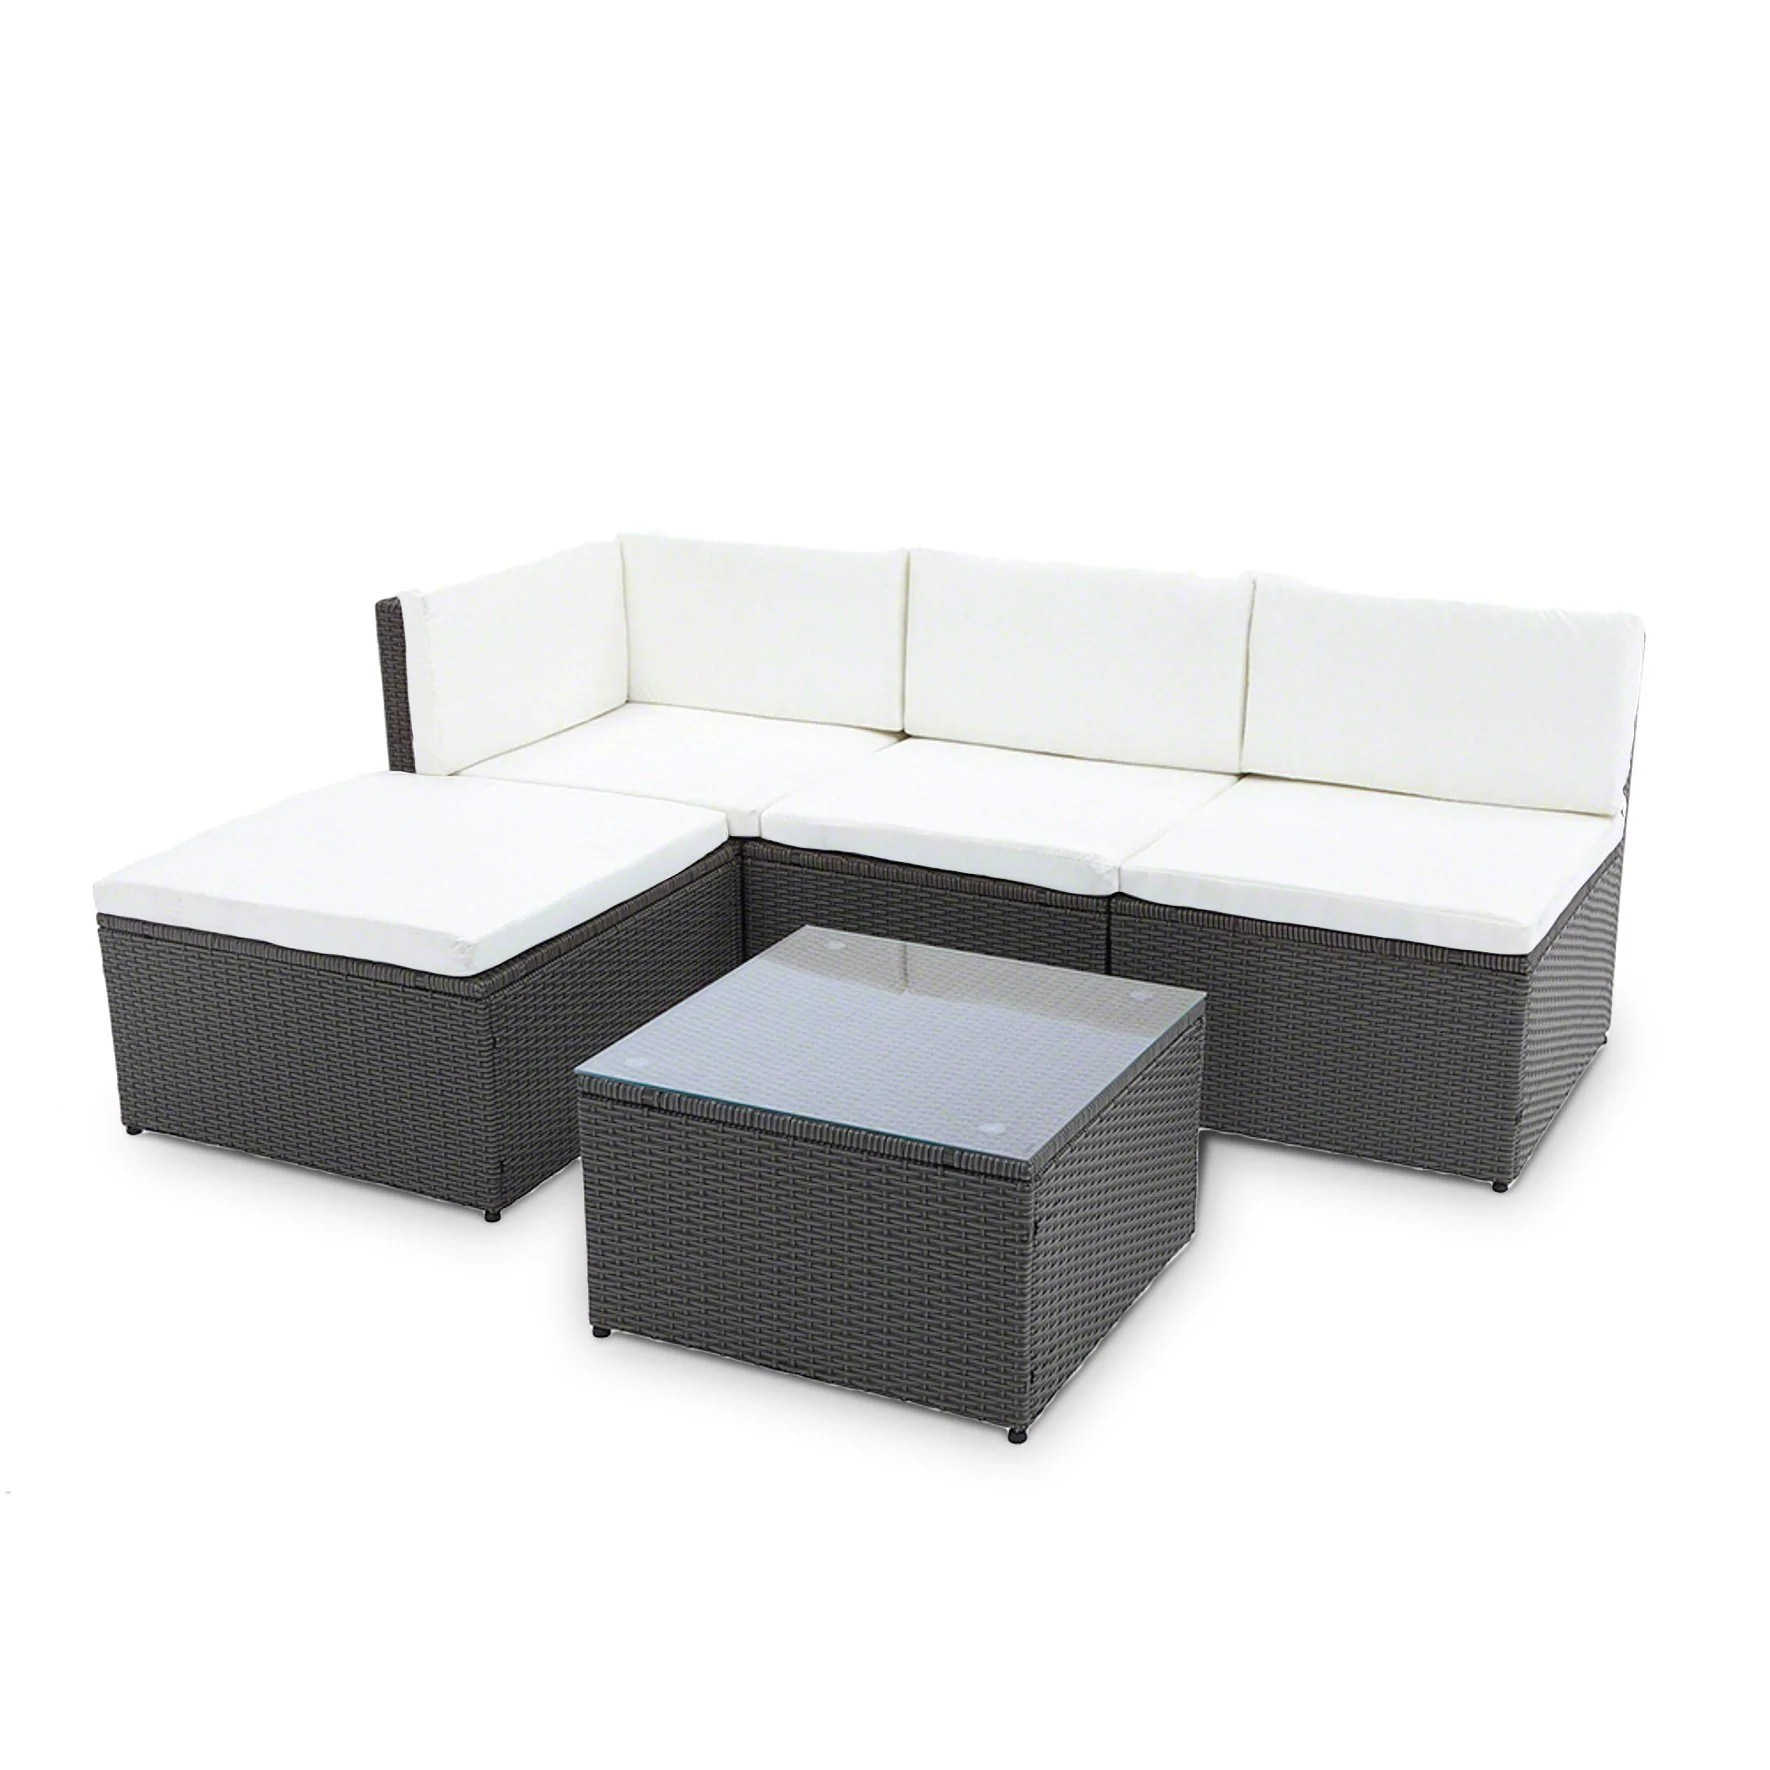 Outdoor Sofa Rattan Corner Sofa Rattan Garden Furniture Set Black